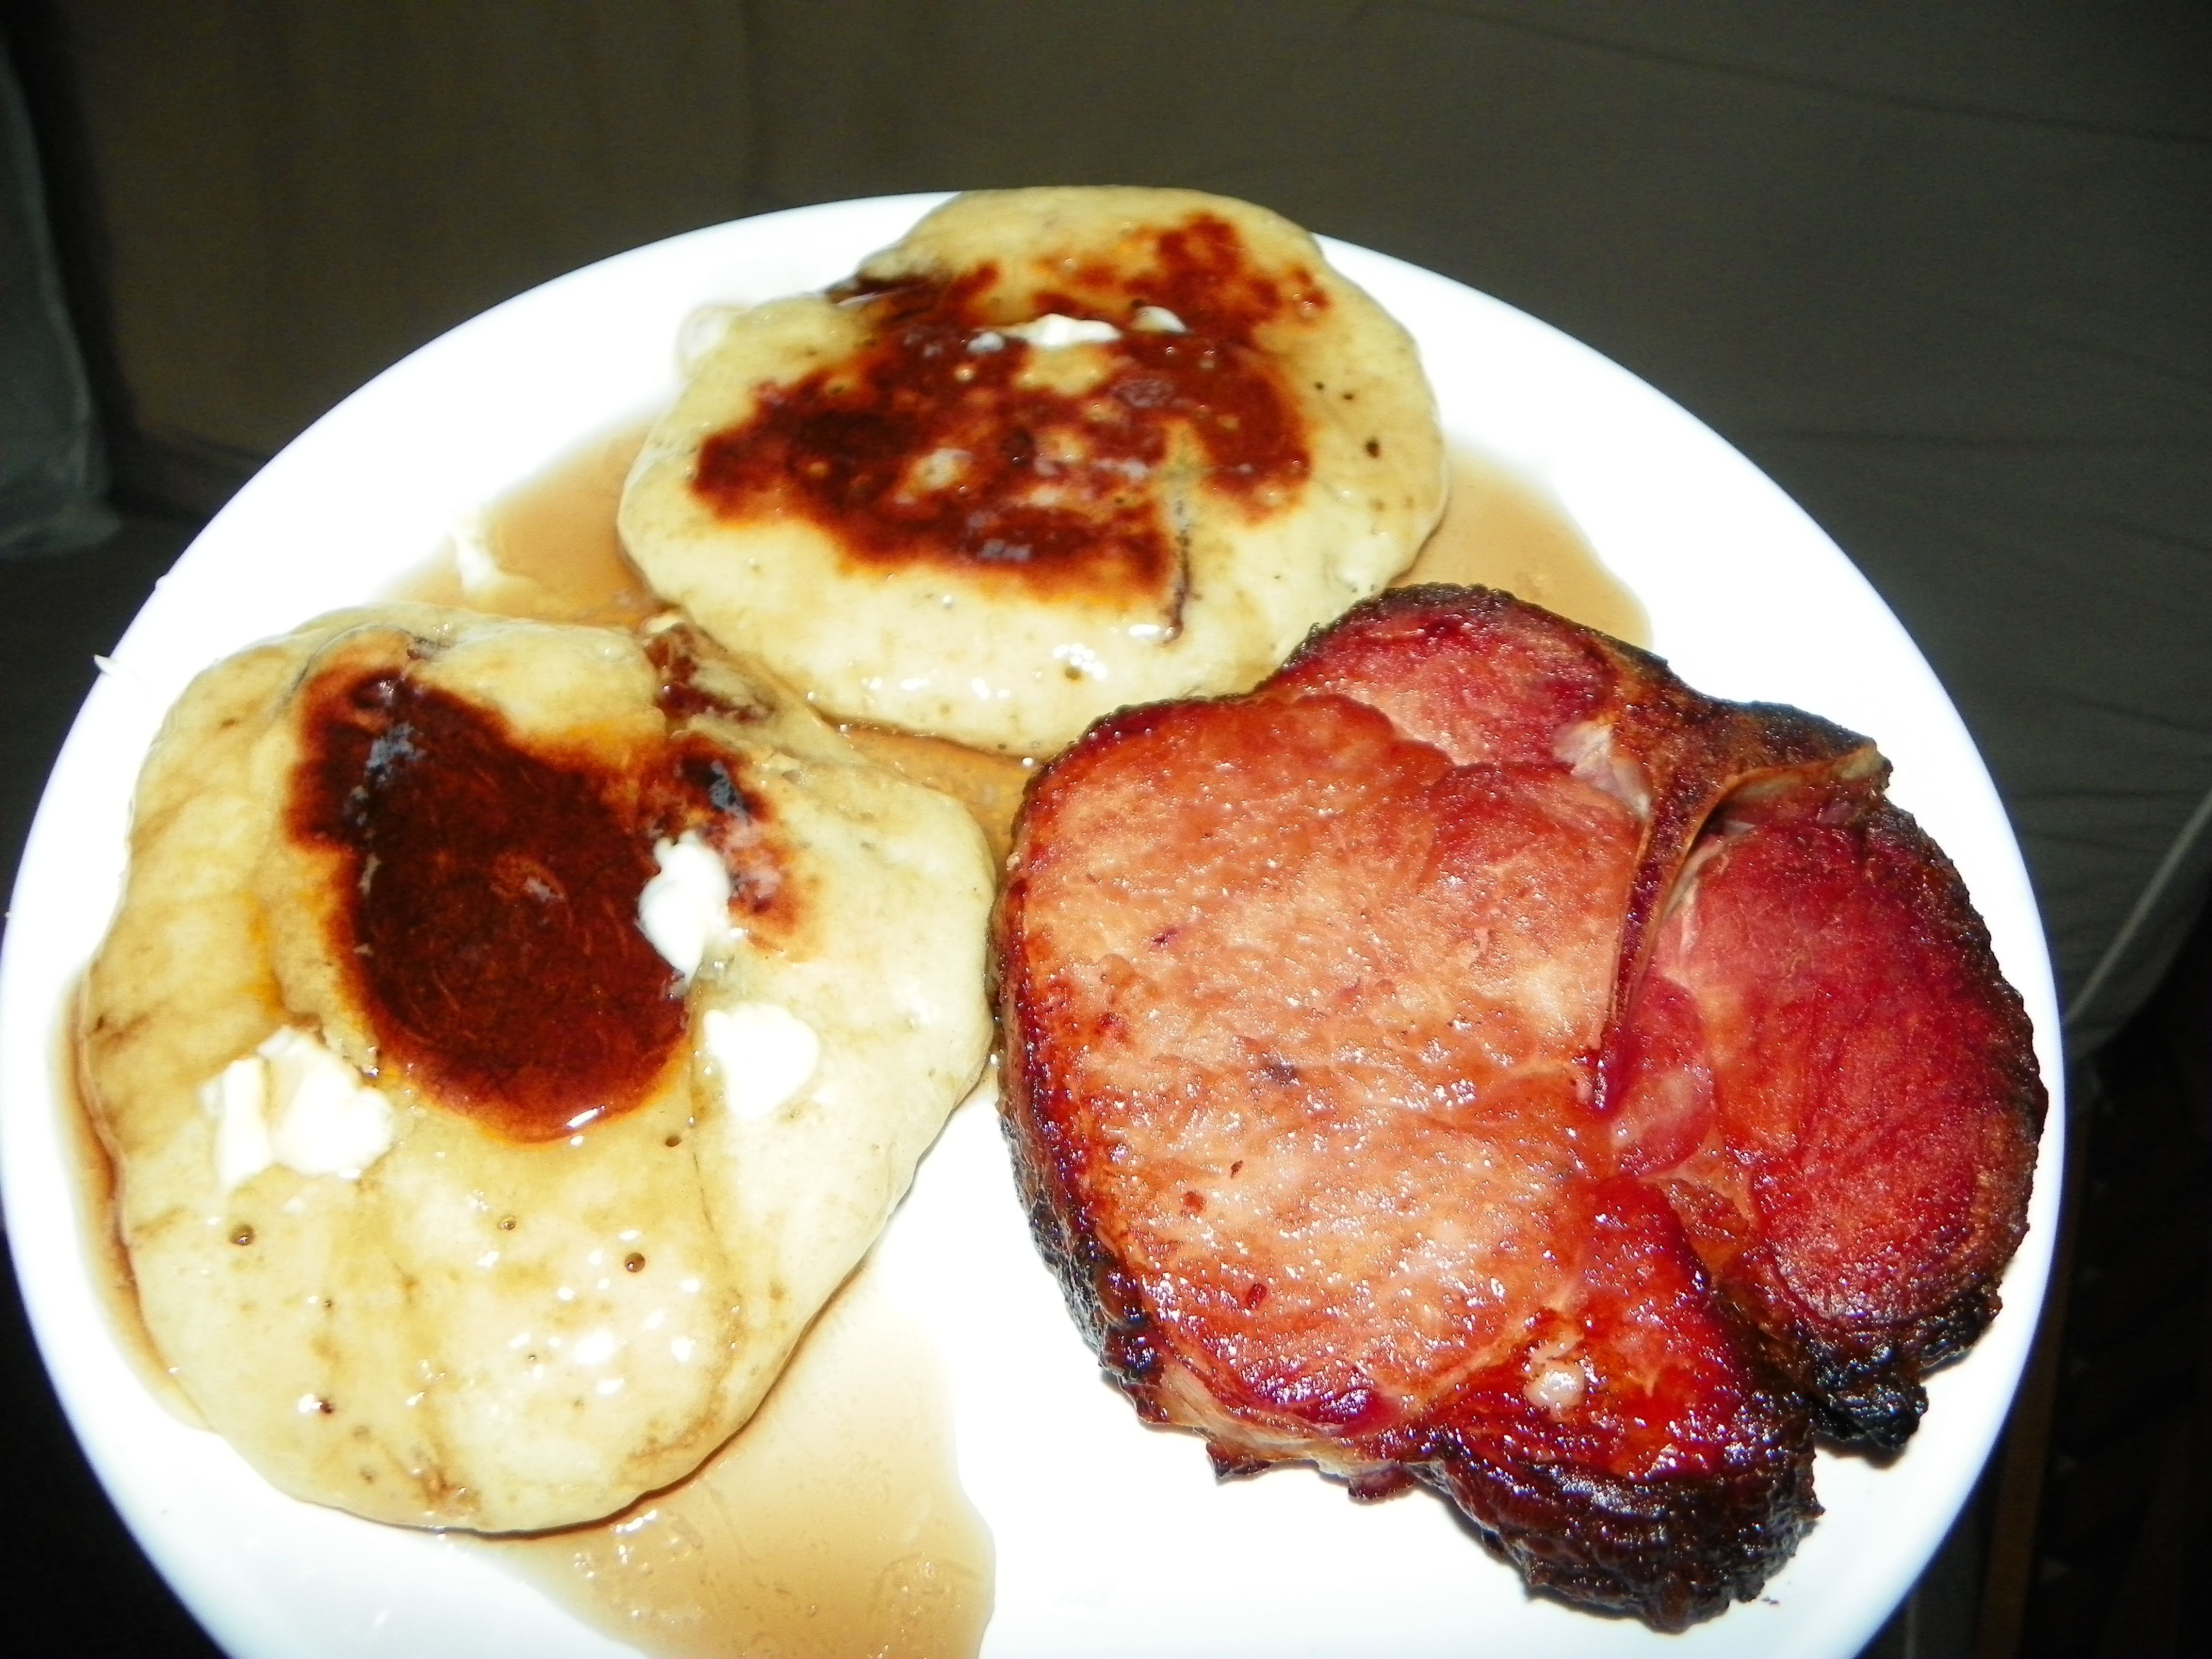 Beer Pancakes with smoke Porkchop.  1 C sifted all-purpose flour, 1/4 C. white sugar, 3/4 tsp. baking powder, 1/2 tsp. salt, 1 egg beaten, 1 cup beer (root beer for kids),   2 TBS. melted butter